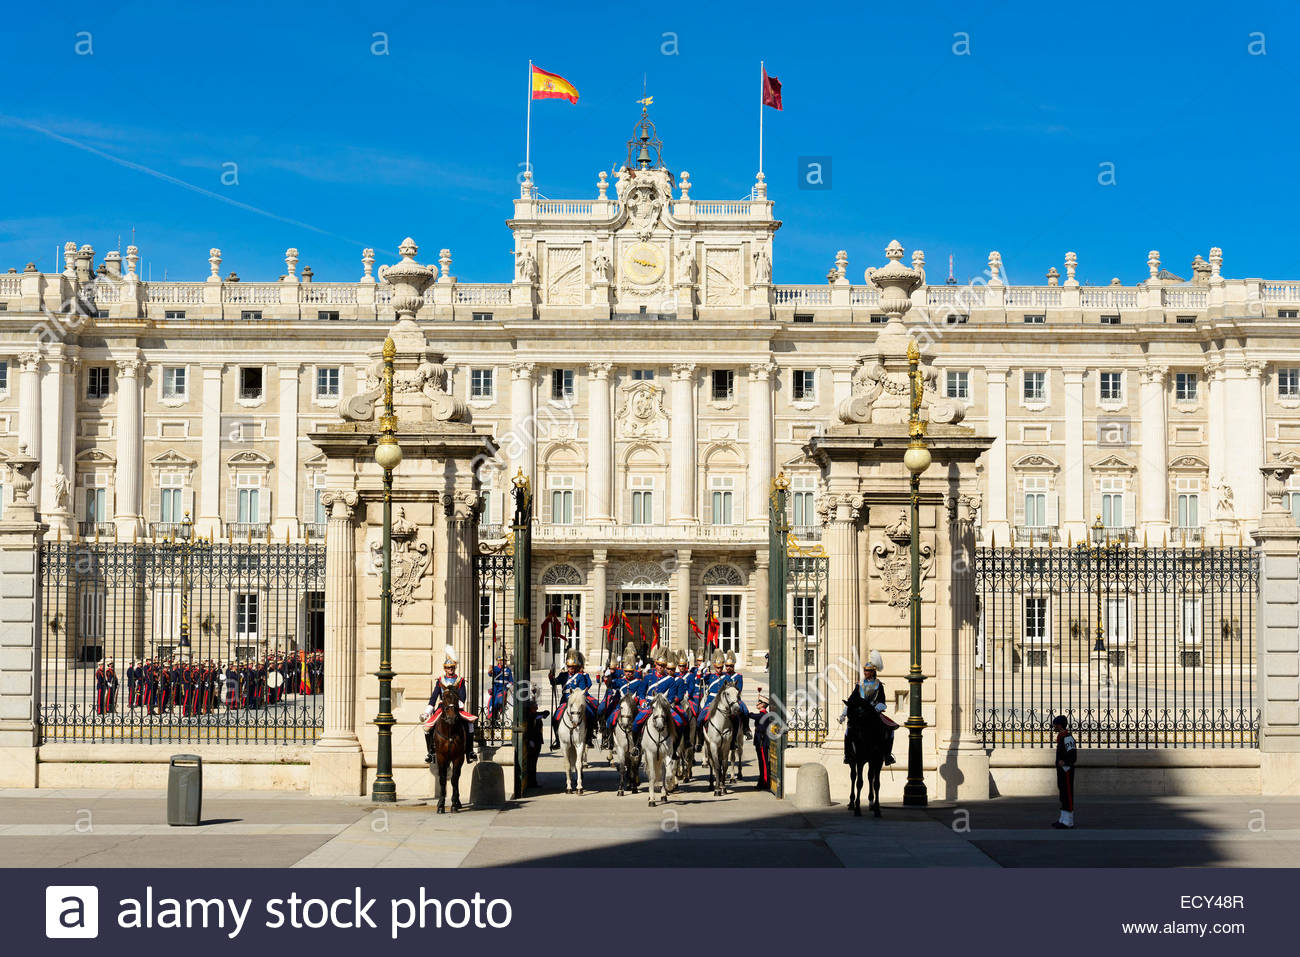 Departure Of The Guard Audience And King Philip At The Royal Palace Of Madrid